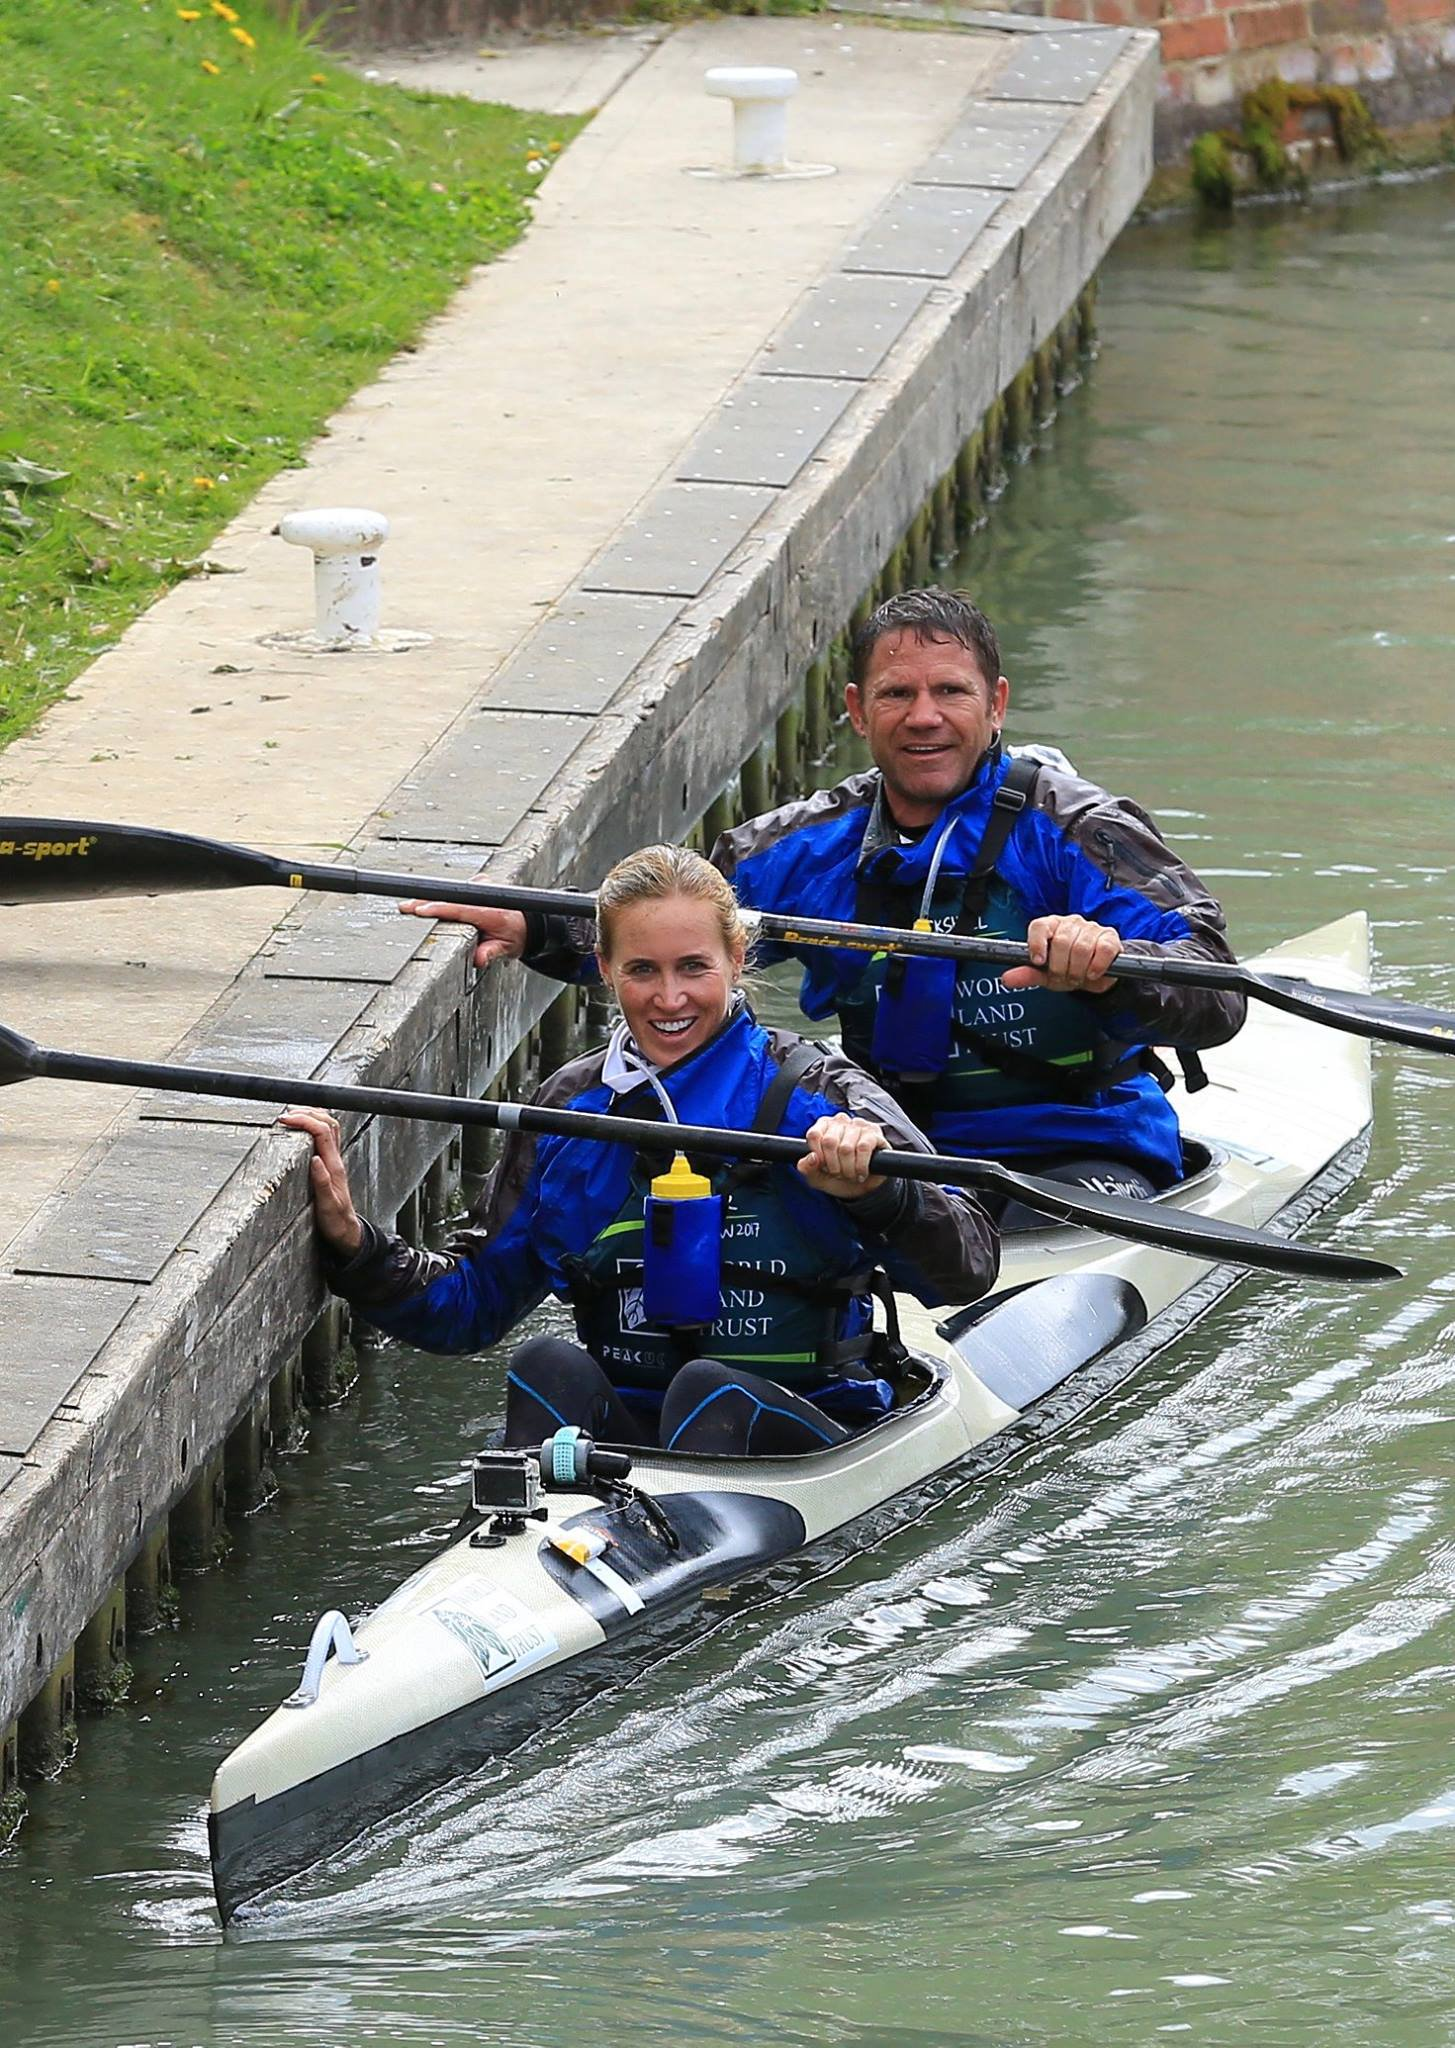 Congratulations to Steve Backshall and Helen Glover for completing the 125 mile canoe race from Wiltshire to Westminster last month and raising over £150,000 for the World Land Trust  goo.gl/2CqNkW